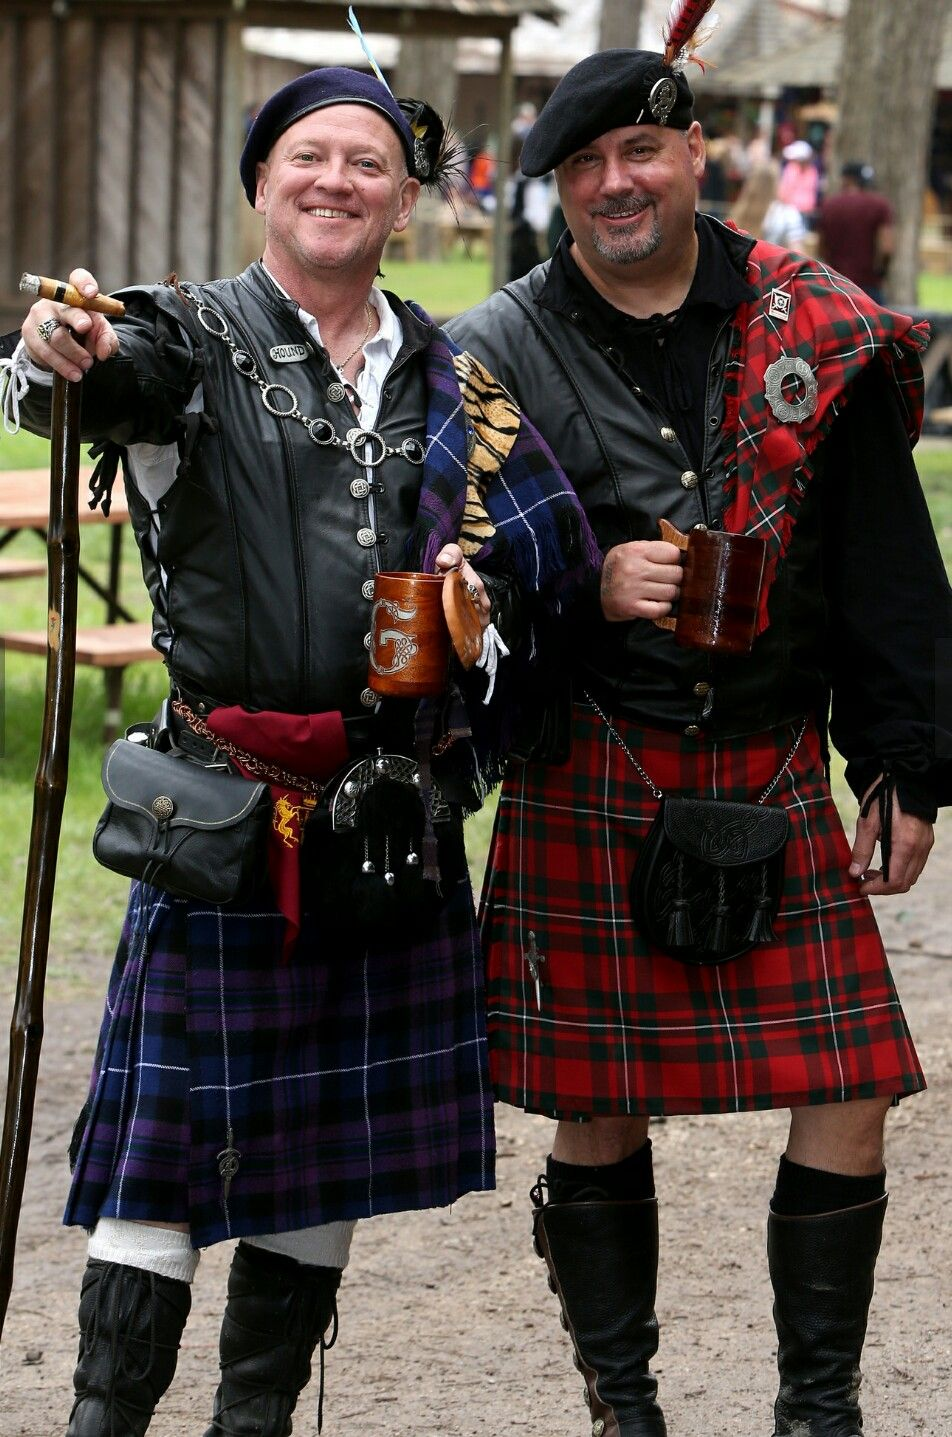 Renaissance Fairs: Men In Kilts Renaissance Faire Costume Scarborough Fair